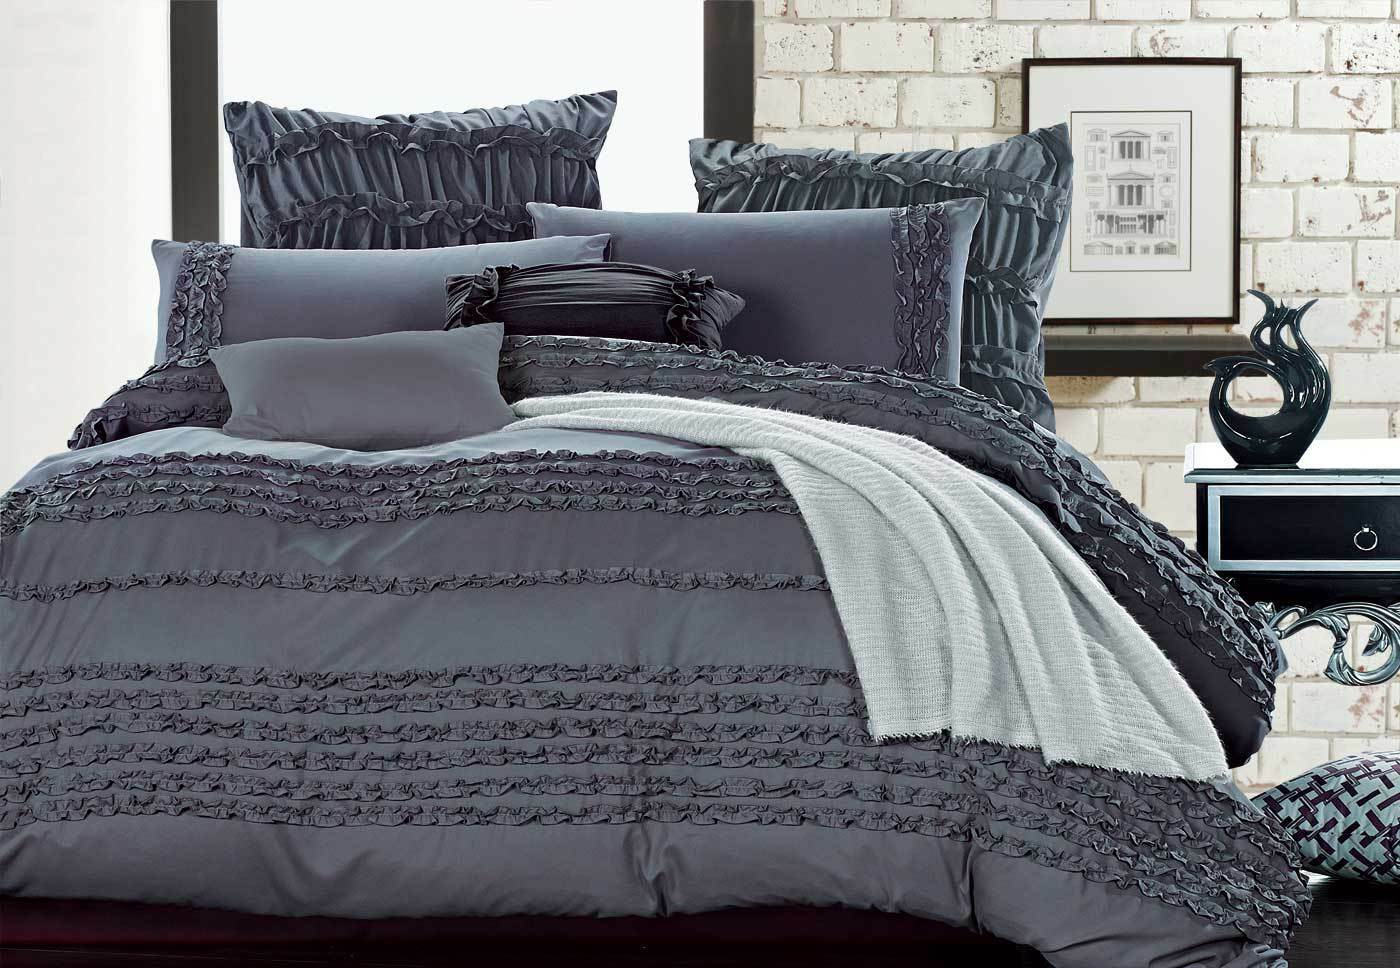 Queen Size Doona Covers Fabiano Slate Grey Quilt Cover Set King Queen Size